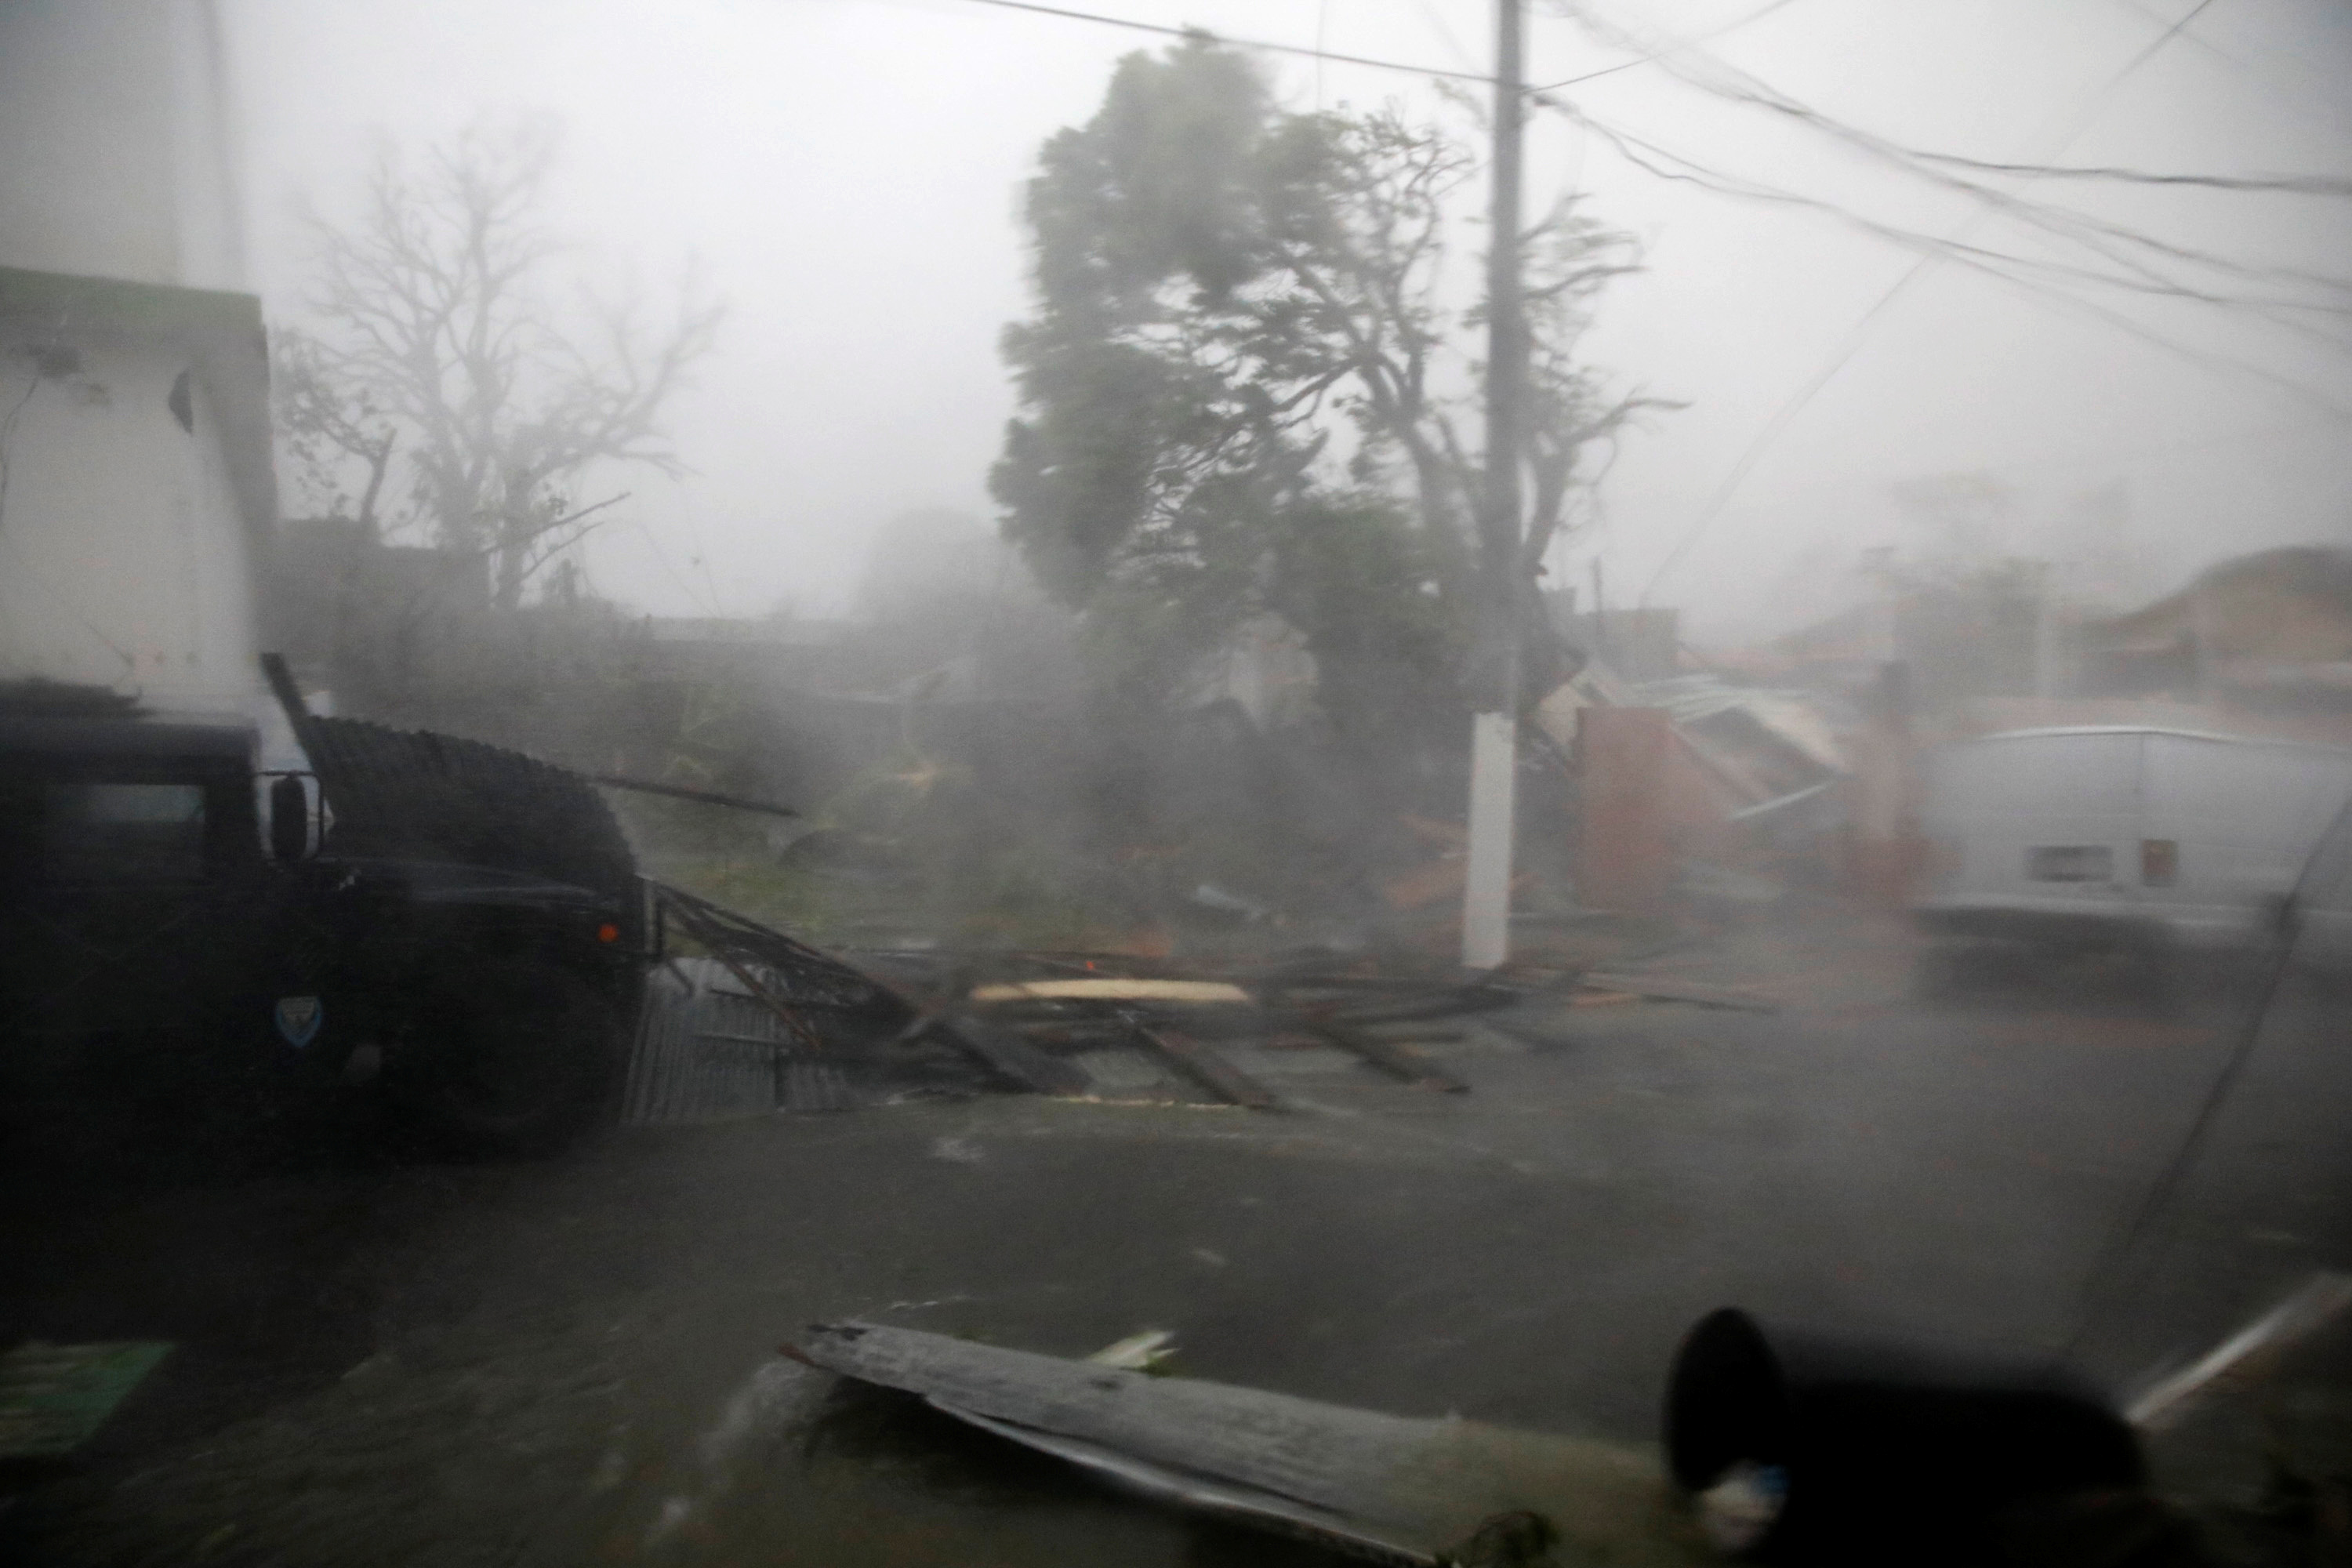 Damage and flooded streets are seen after the area was hit by Hurricane Maria in Guayama, Puerto Rico, Sept. 20, 2017.